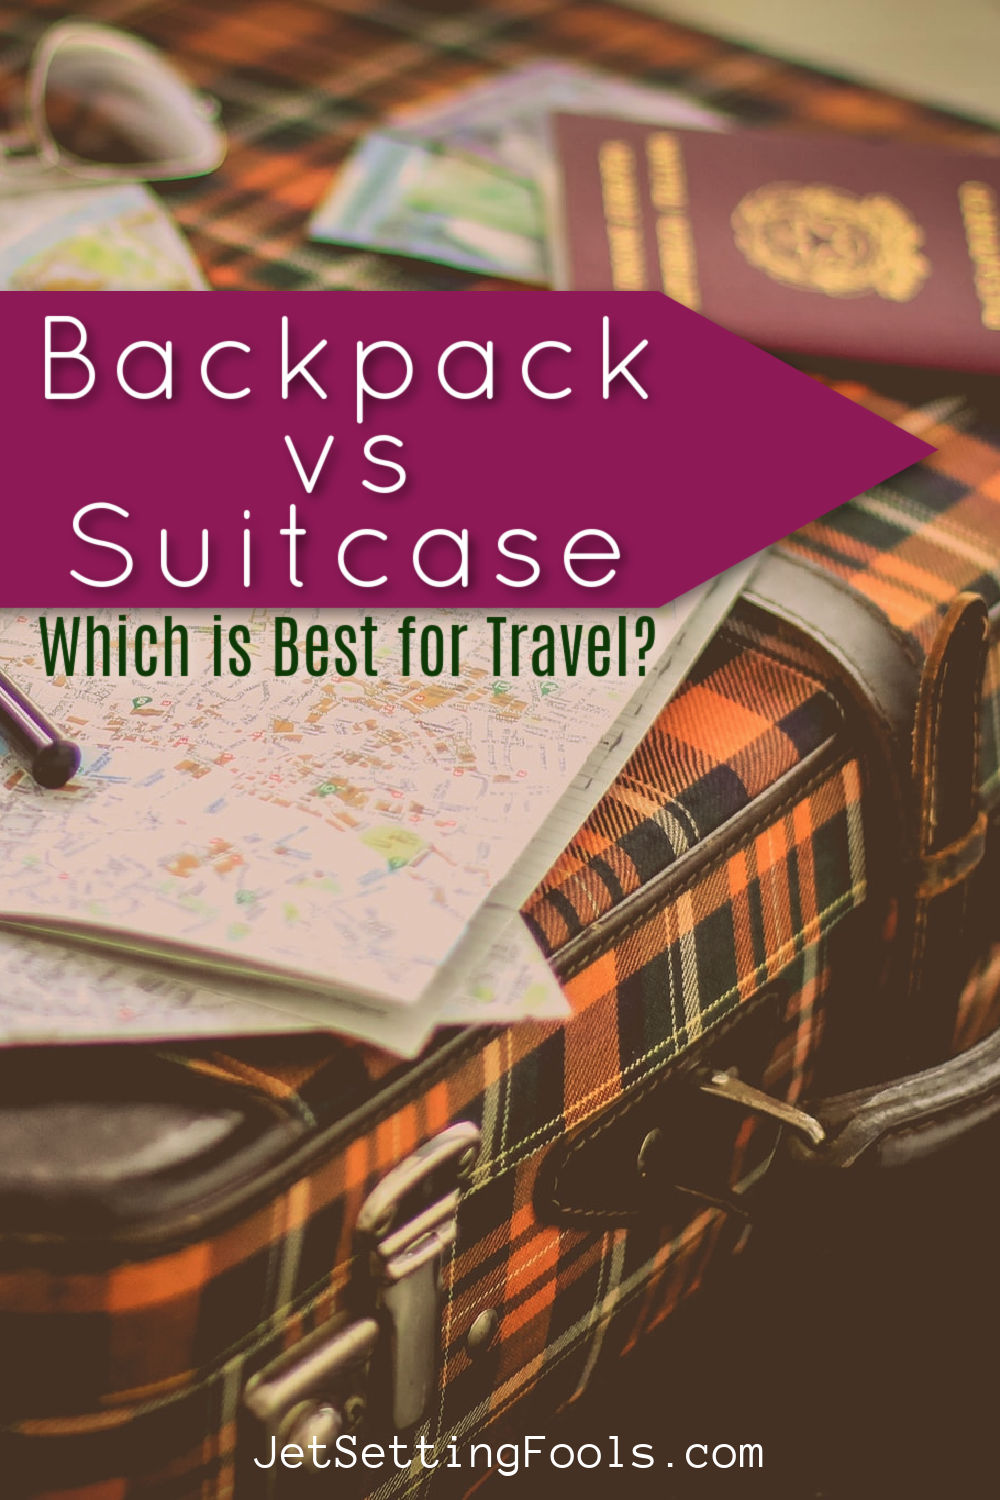 Backpack vs Suitcase Which is Best for Travel by JetSettingFools.com